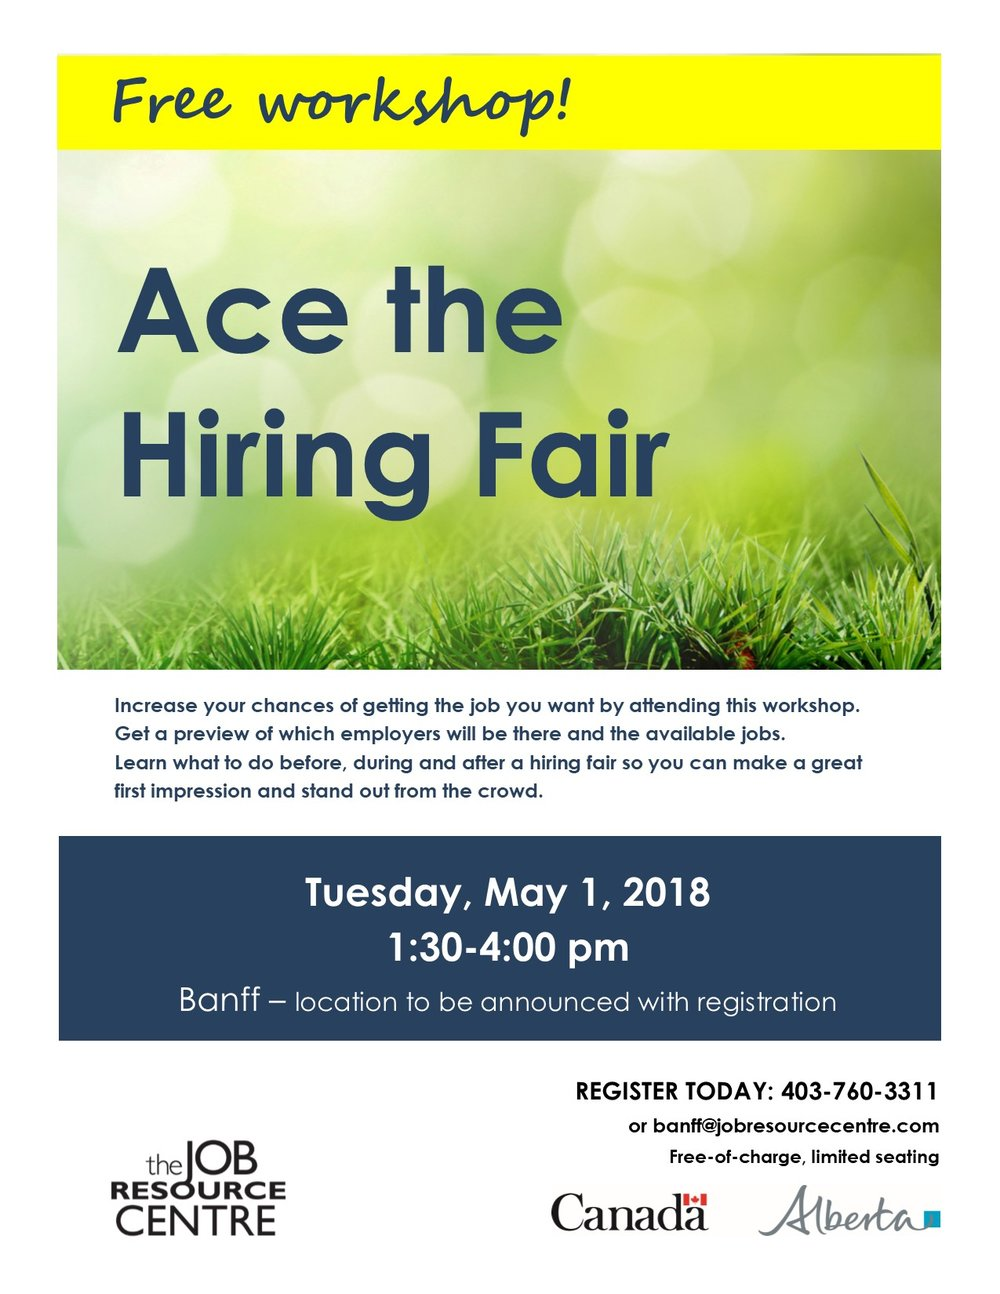 Banff Ace the Hiring Fair poster spring 2018.jpg